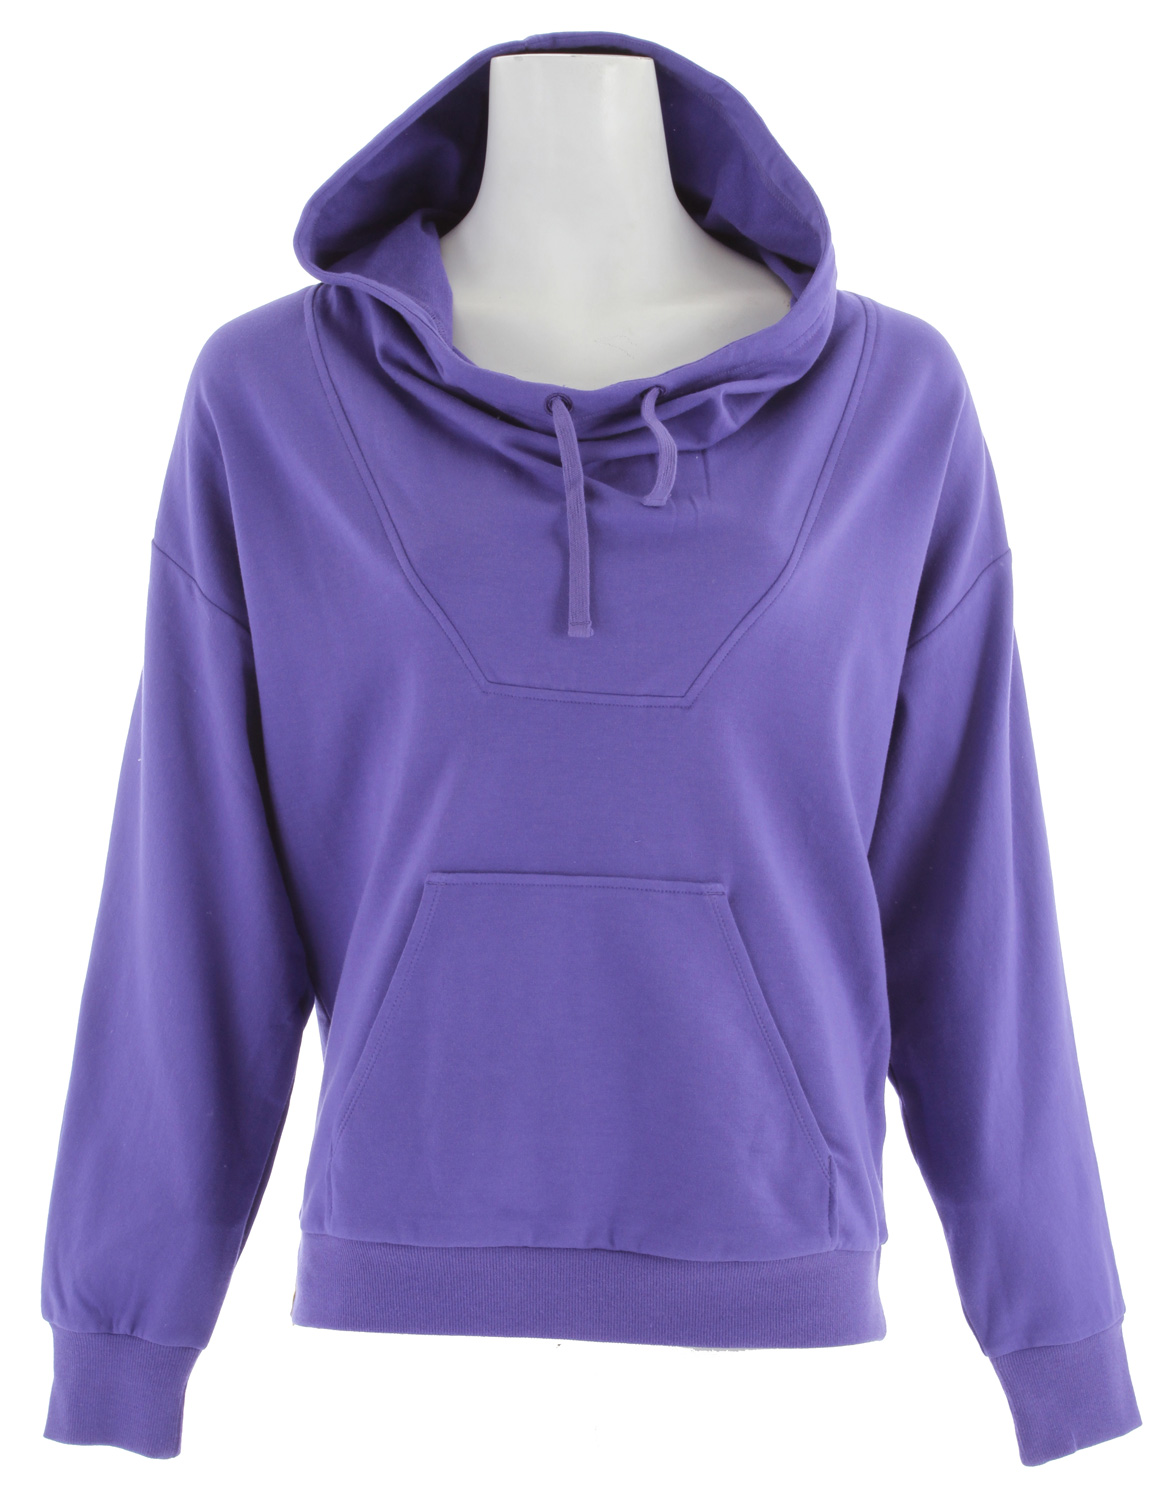 "The Lole Terry Cardigan Hoodie is a hoodie designed for women that offers comfort, style and practicality.  The Terry Cardigan Hoodie may in fact be the most comfortable hoodie you ever wear! It has a dolman sleeve design which makes it very easy to put on, along with its pullover design.  The hood of the Lole Terry Cardigan Hoodie features a pull string so that it can cinch down close to your face for extra warmth and has a hand warmer pocket sewn to the front.Key Features of the Lole Terry Cardigan Hoodie:  Pullover top with hood  Dolman sleeve with rop shoulder  Adjustable hood opening  Rib insert at cuffs and hem  Patch front pocket  Length 25"" - $61.95"